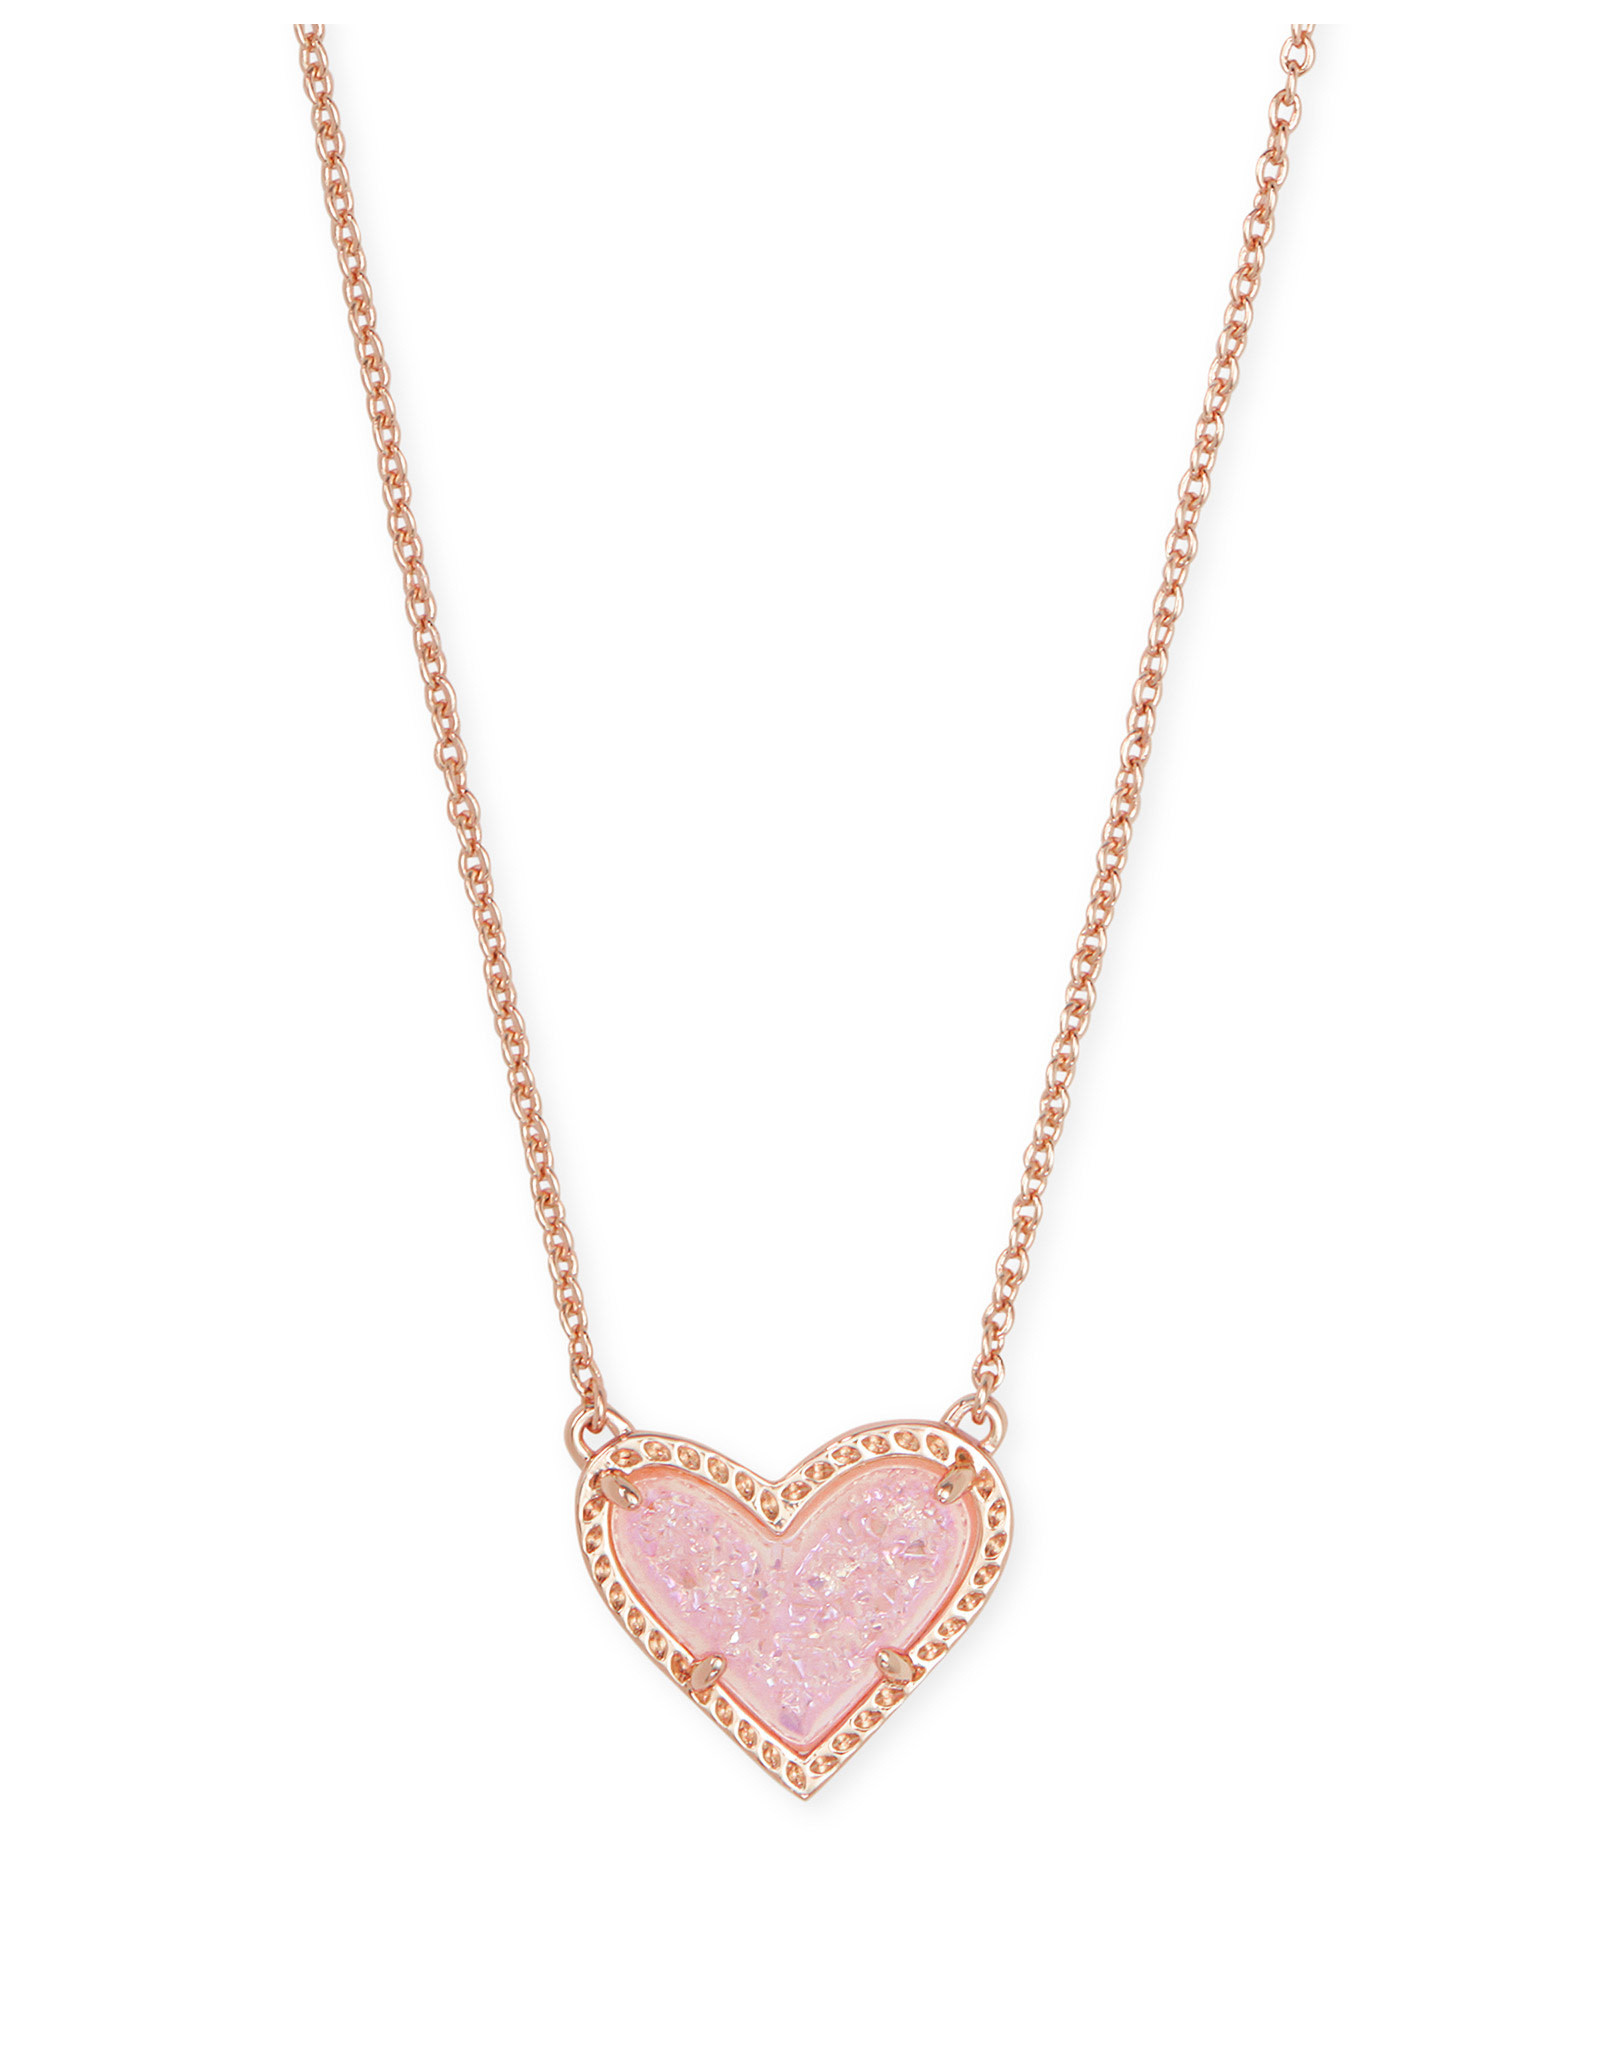 Kendra Scott Ari Heart Necklace Drusy